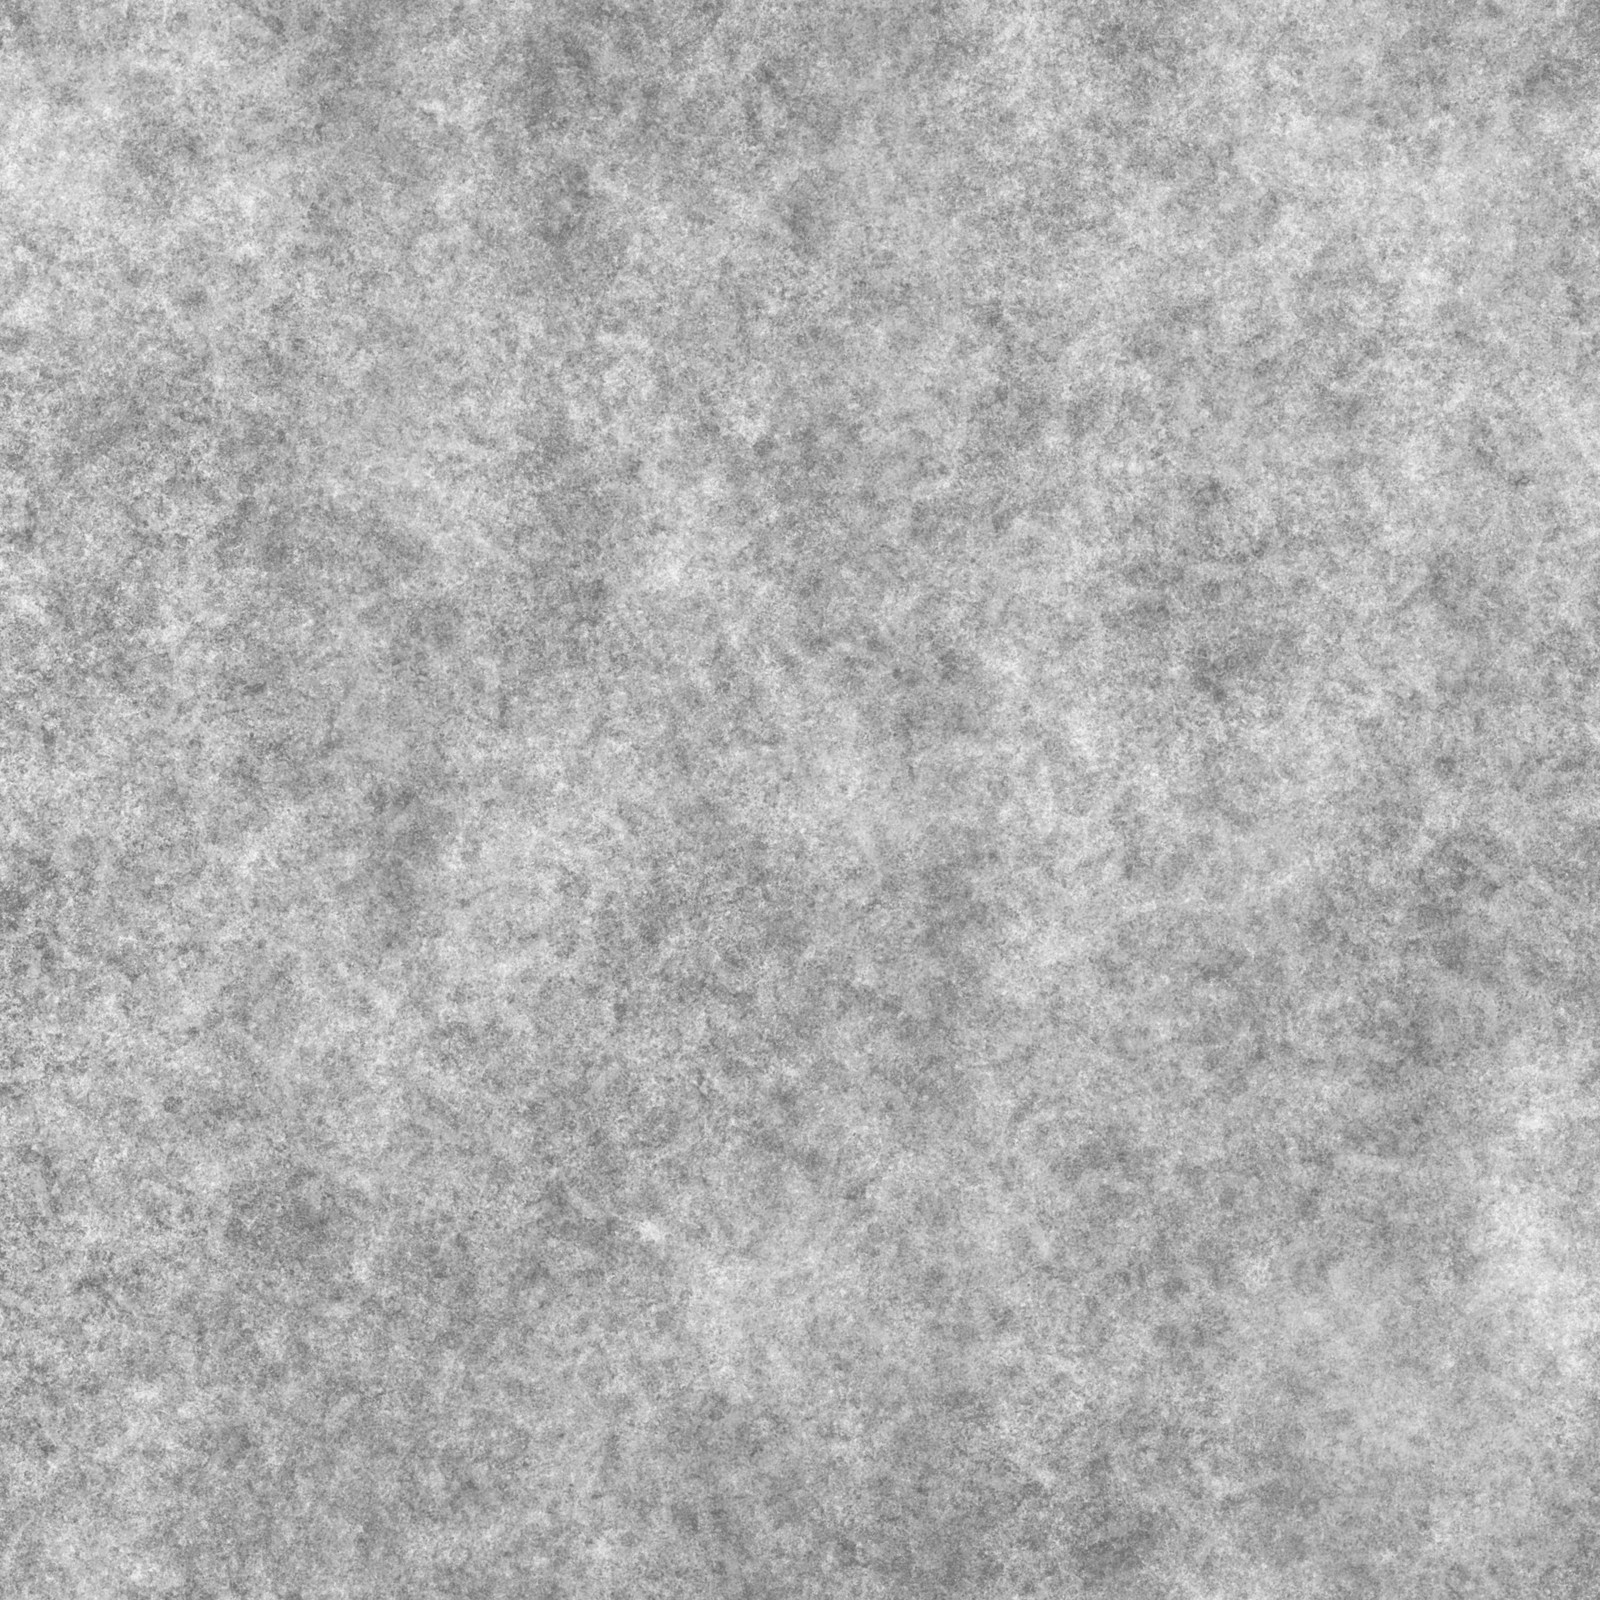 Marble Texture 2